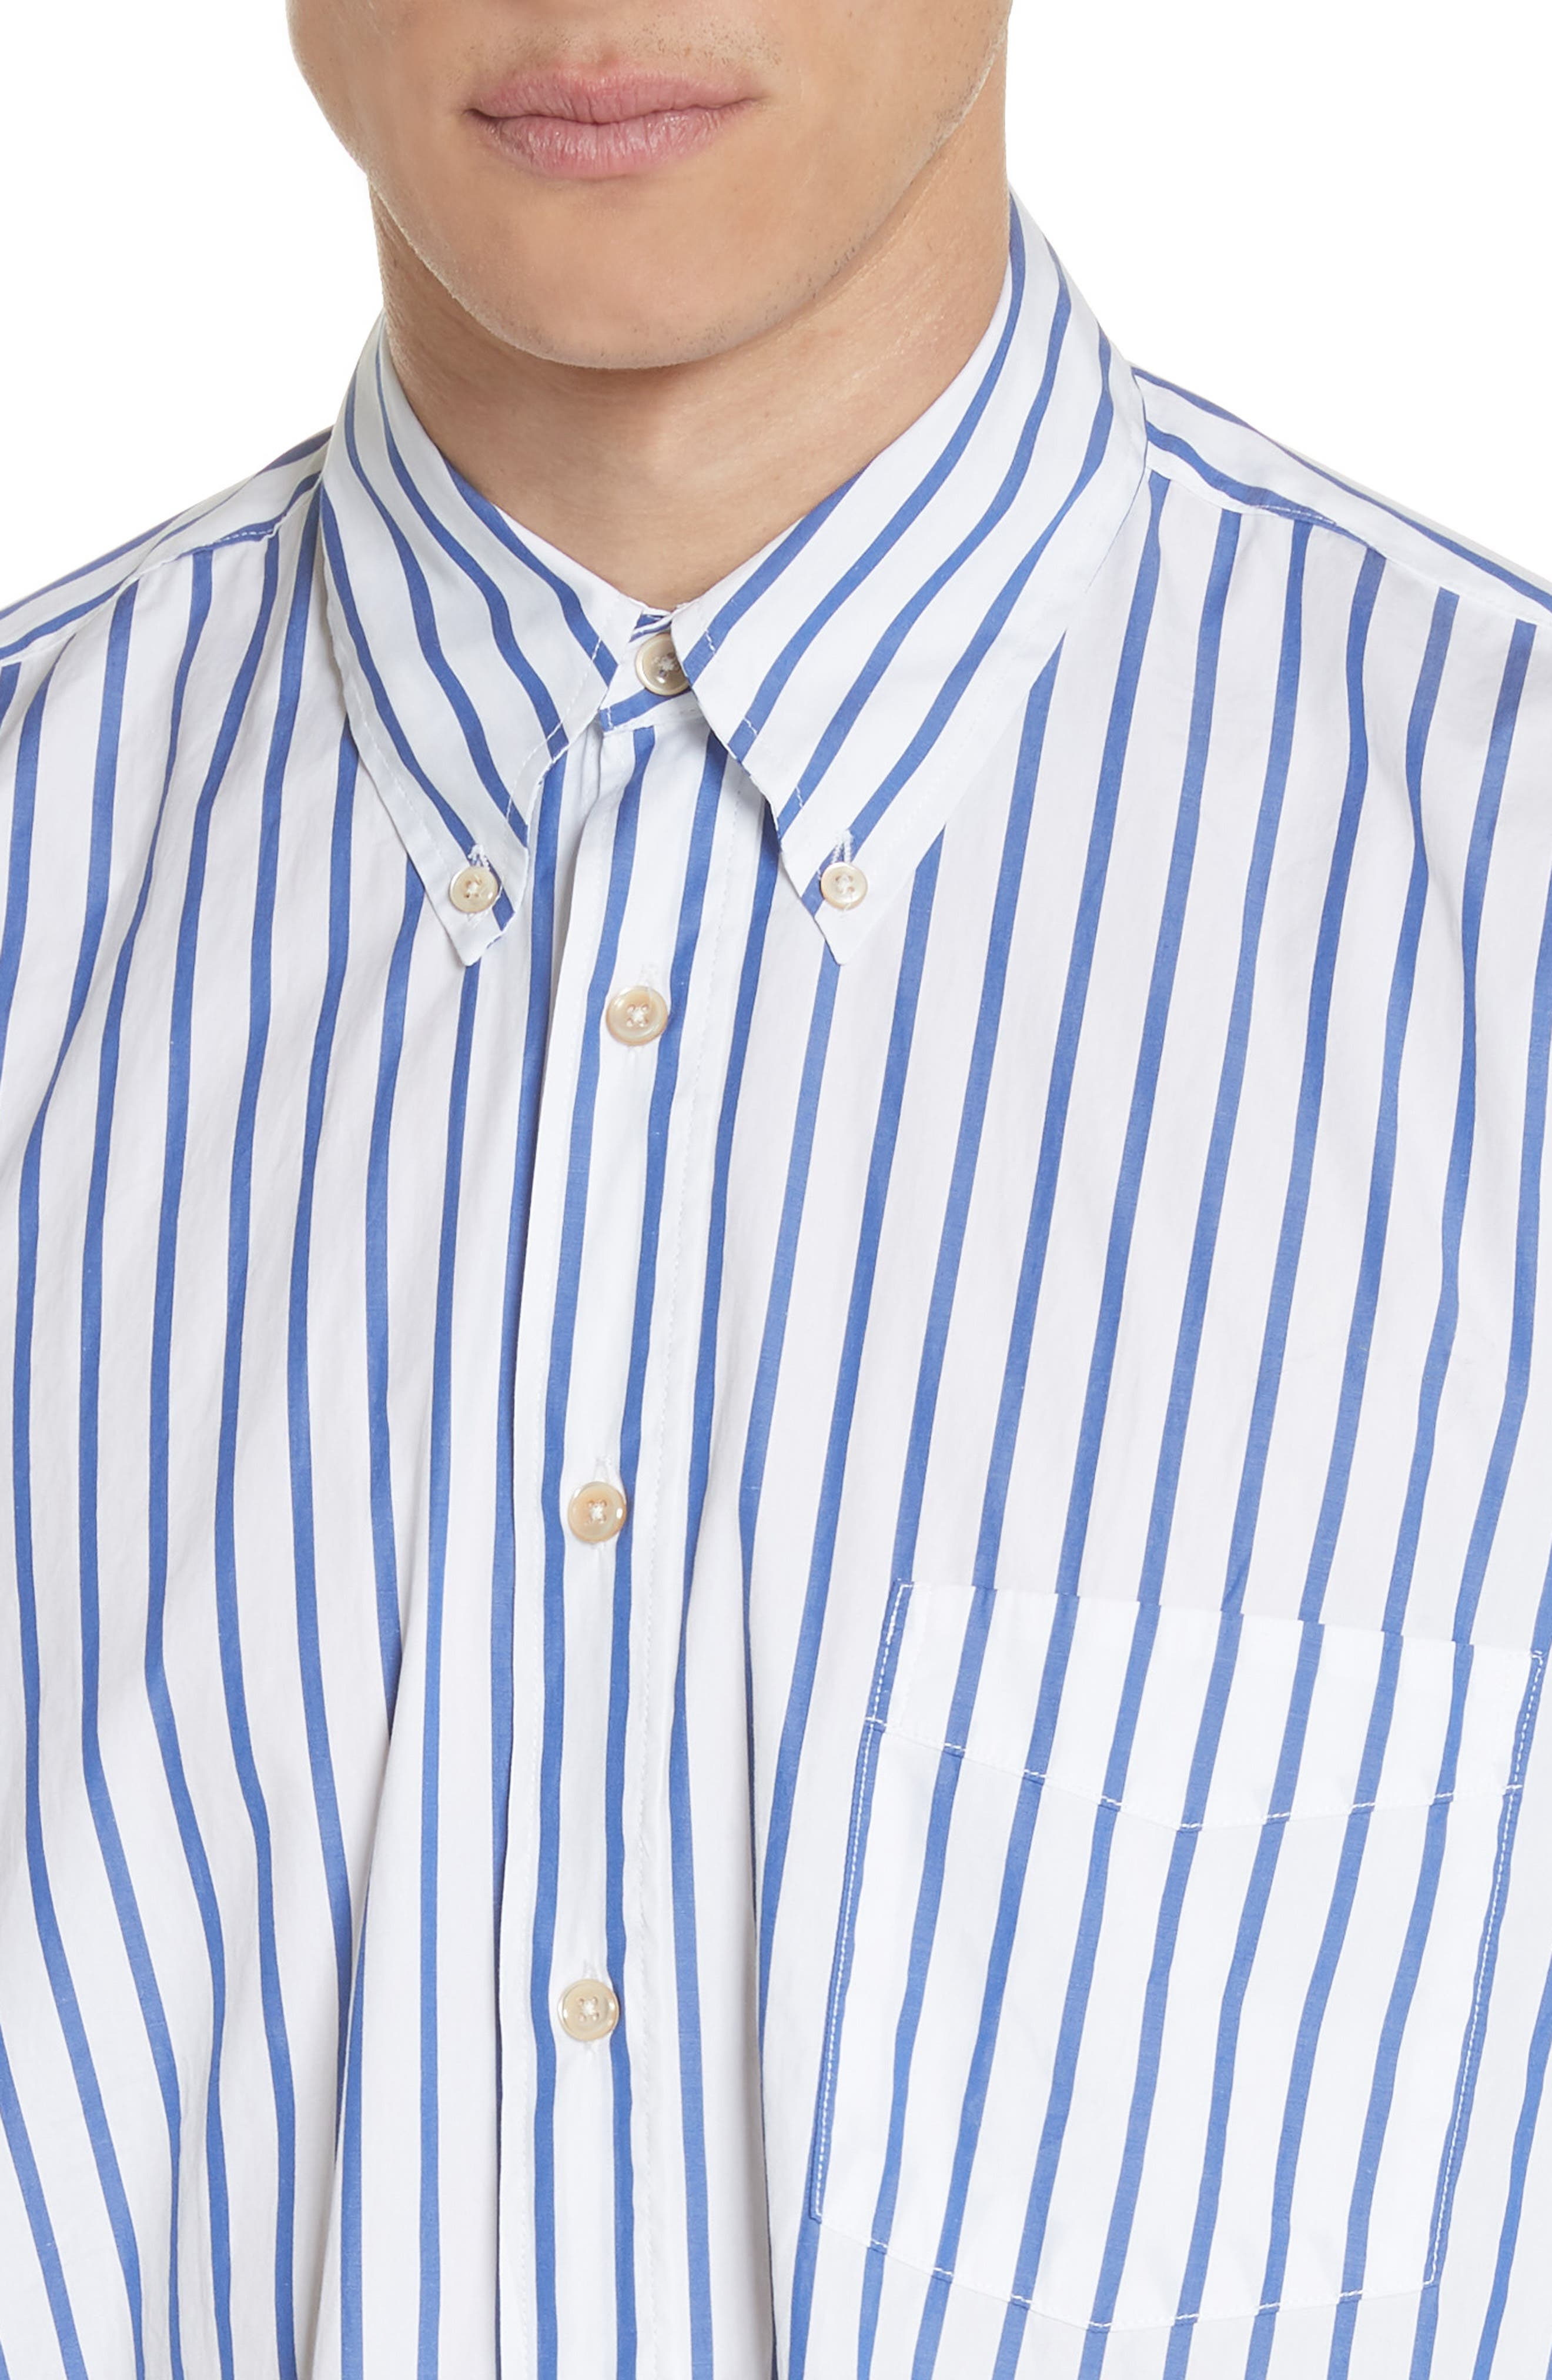 Alternate Image 2  - OUR LEGACY Oversize Stripe Woven Shirt